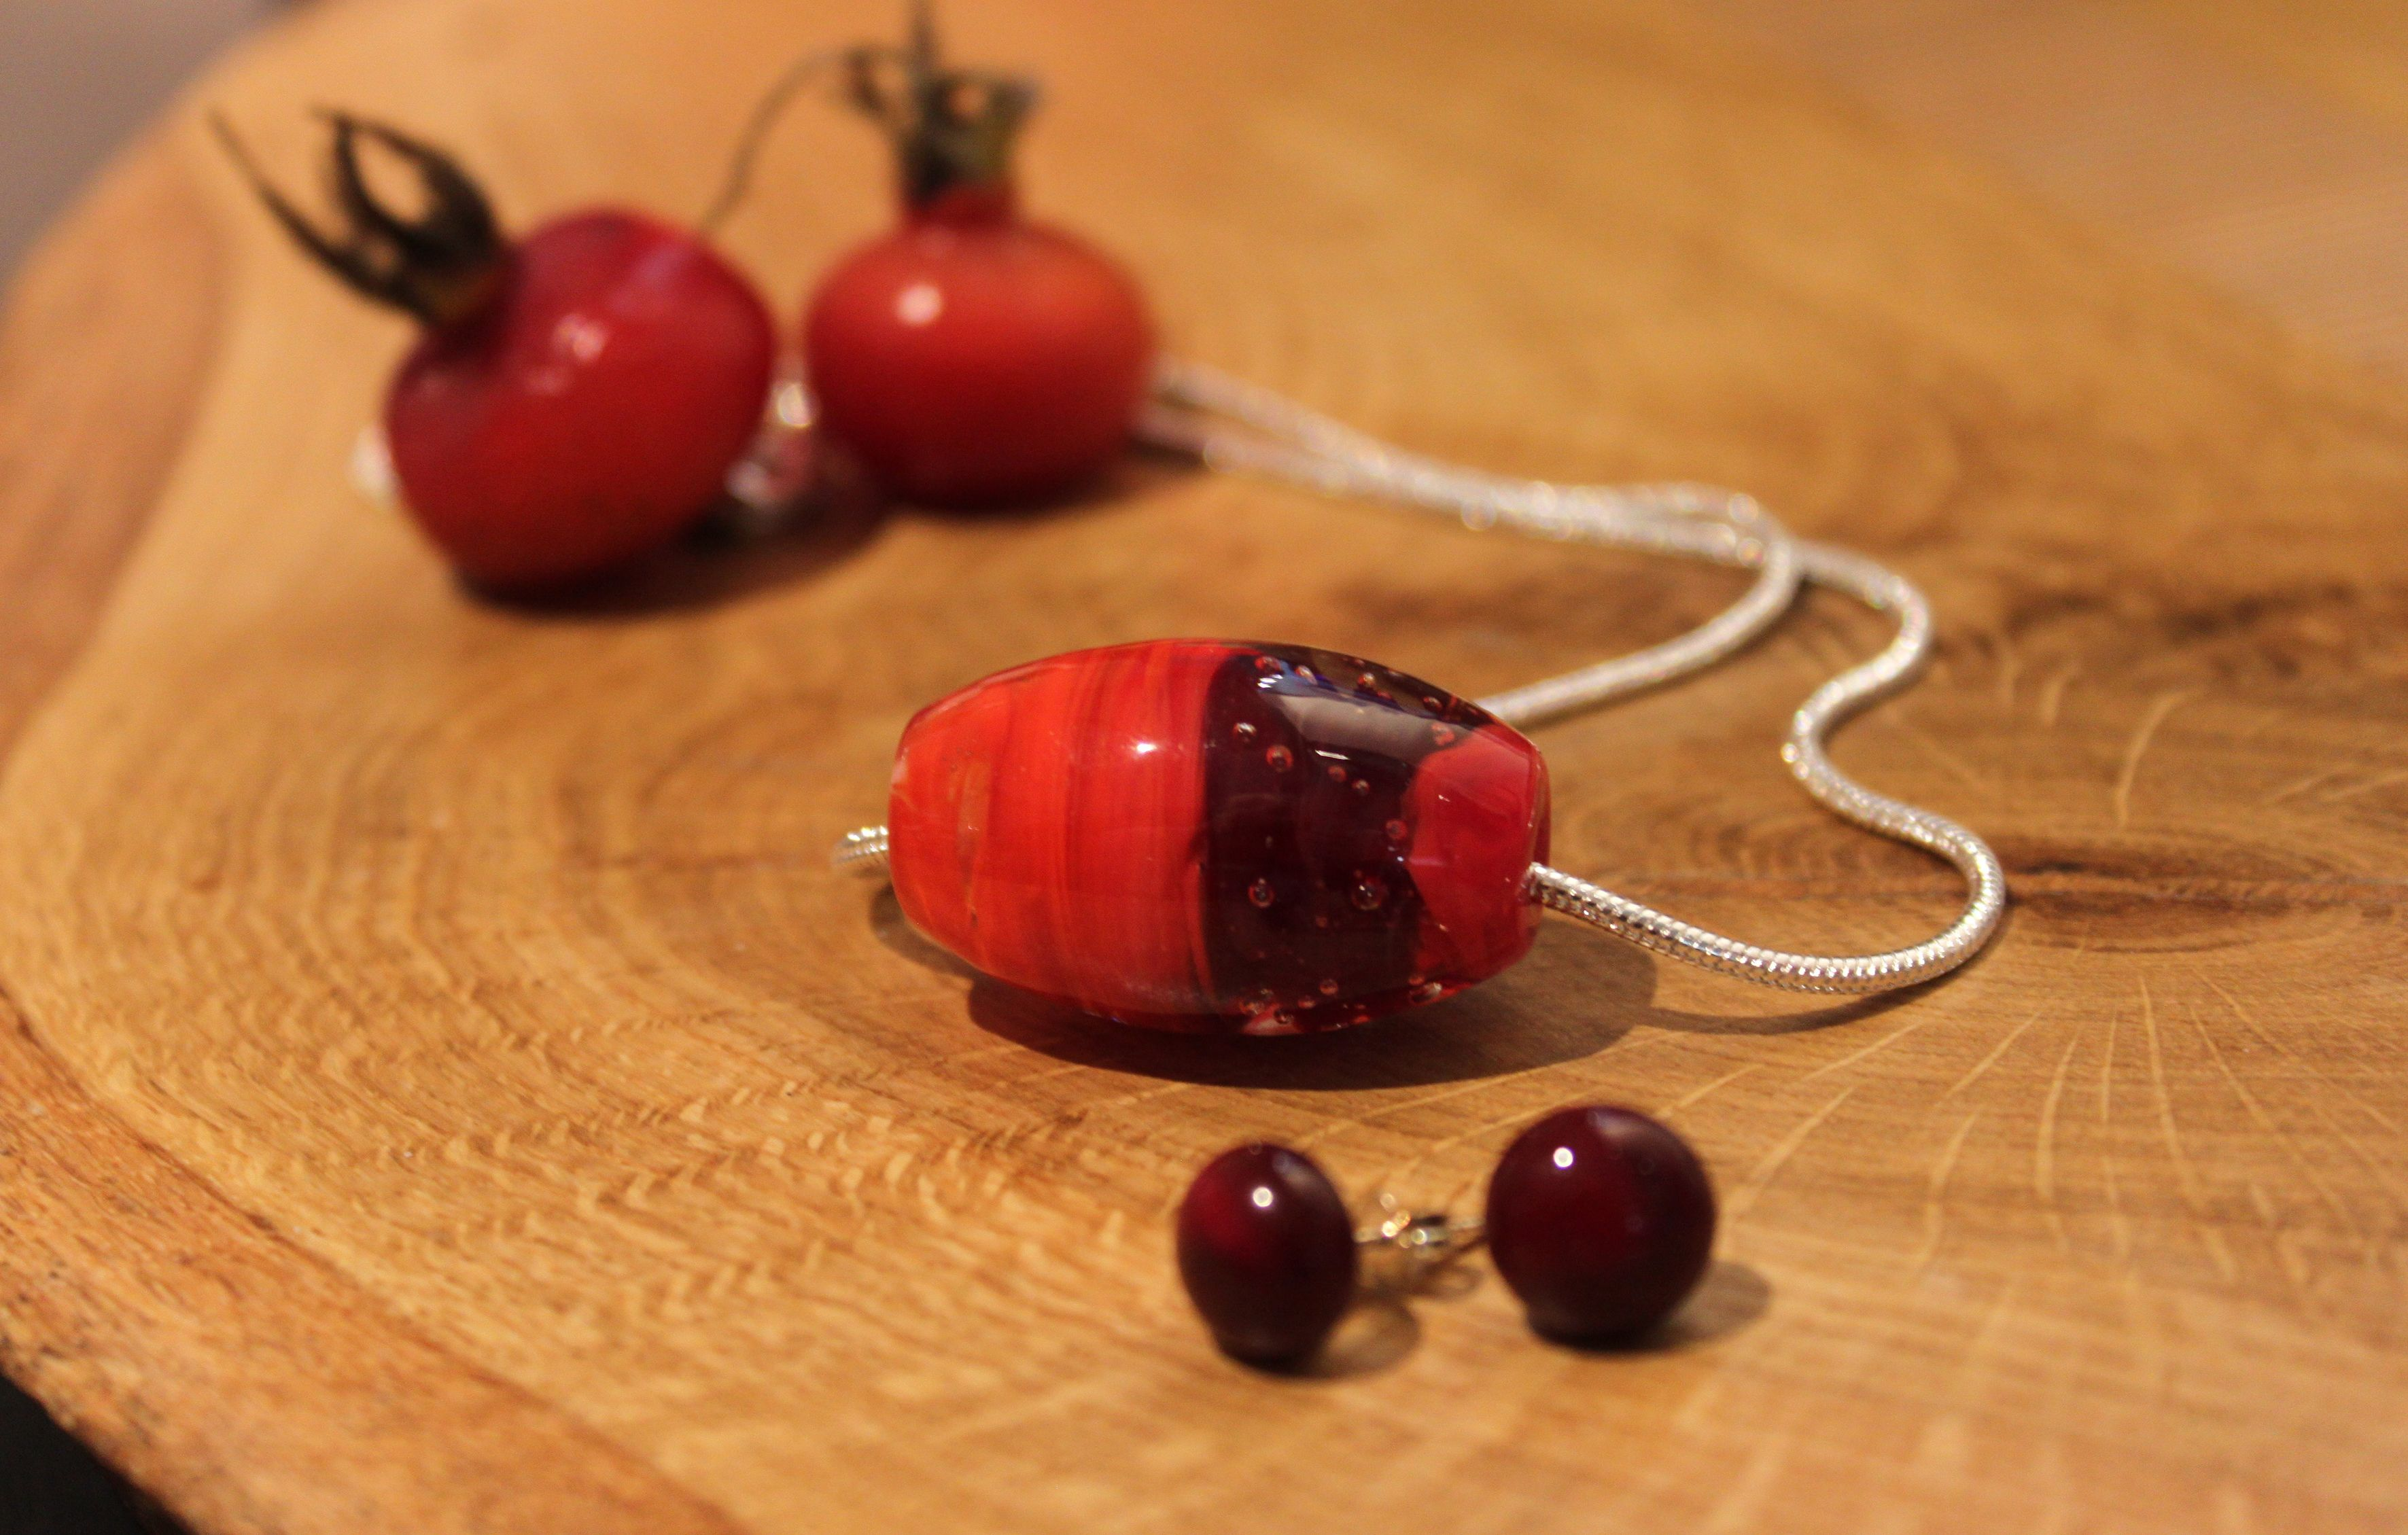 Unique glass jewellery design and made by Mafka, glass artist and glassblower Marja Hepo-aho.